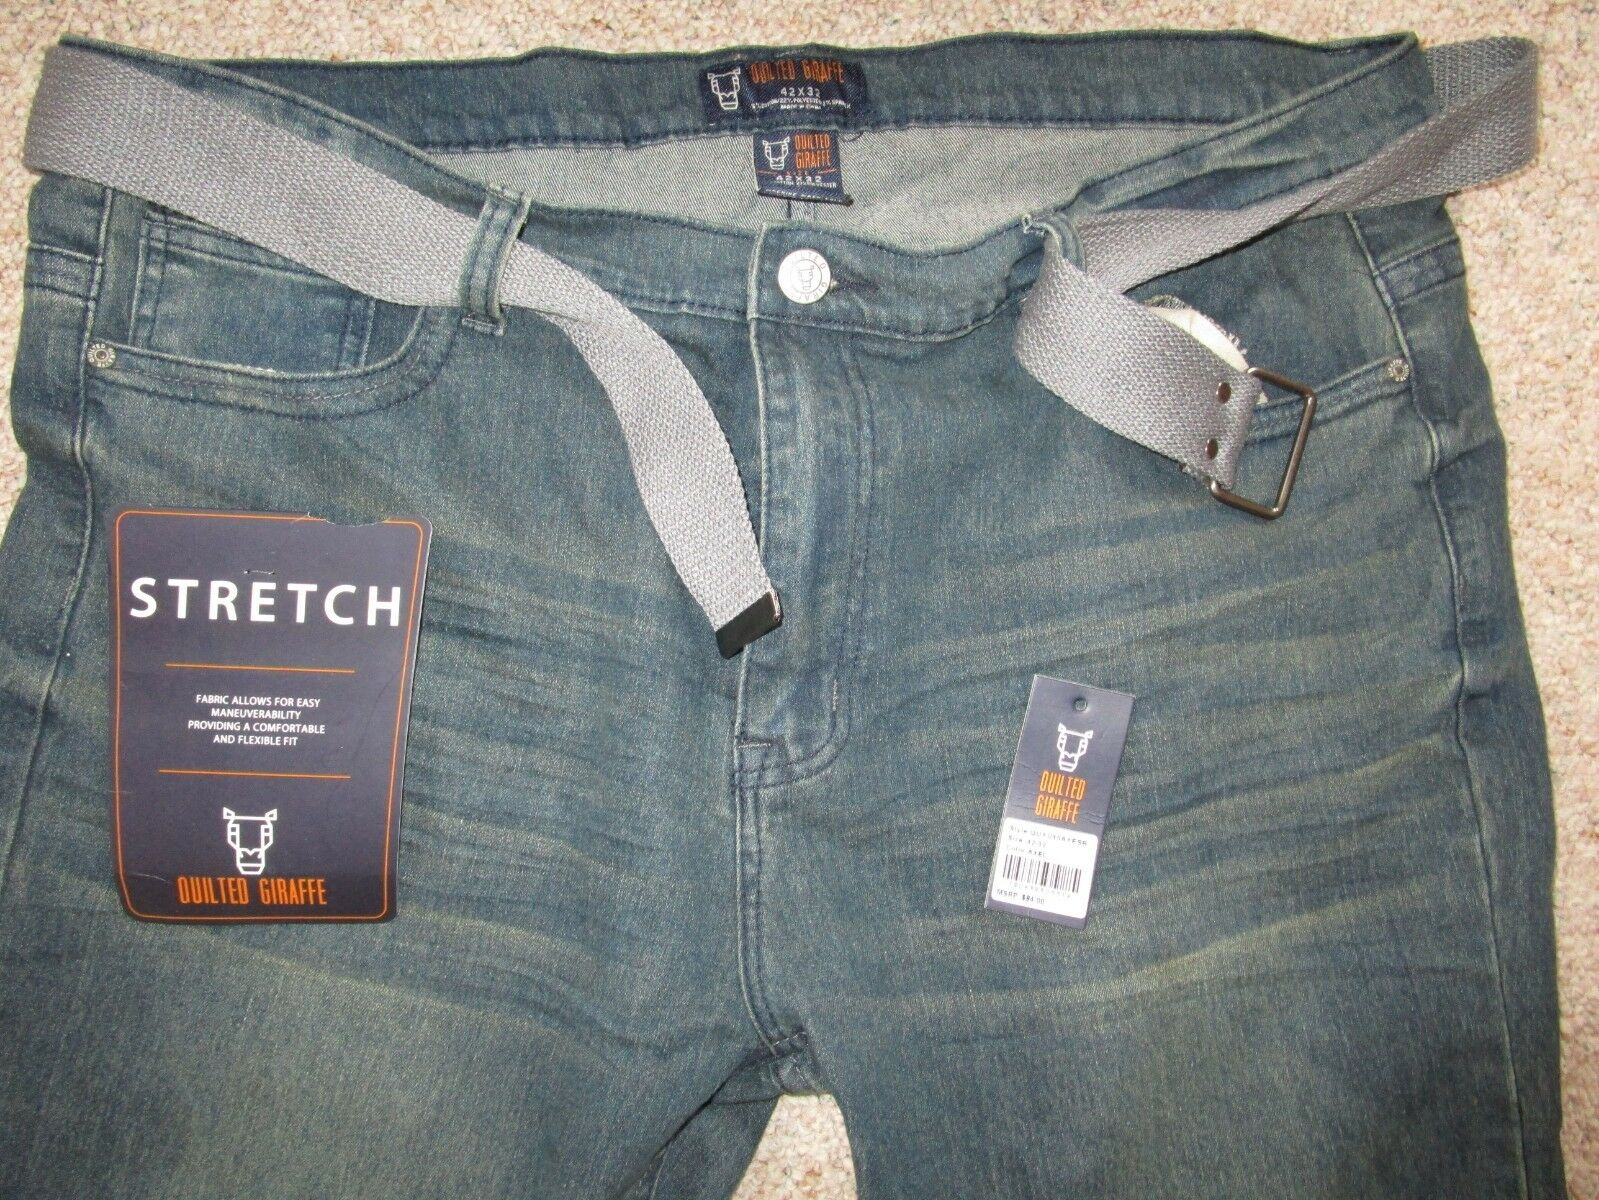 Quilted Giraffe Men's Stretch bluee Jeans Pants Size 42x32 NWOT